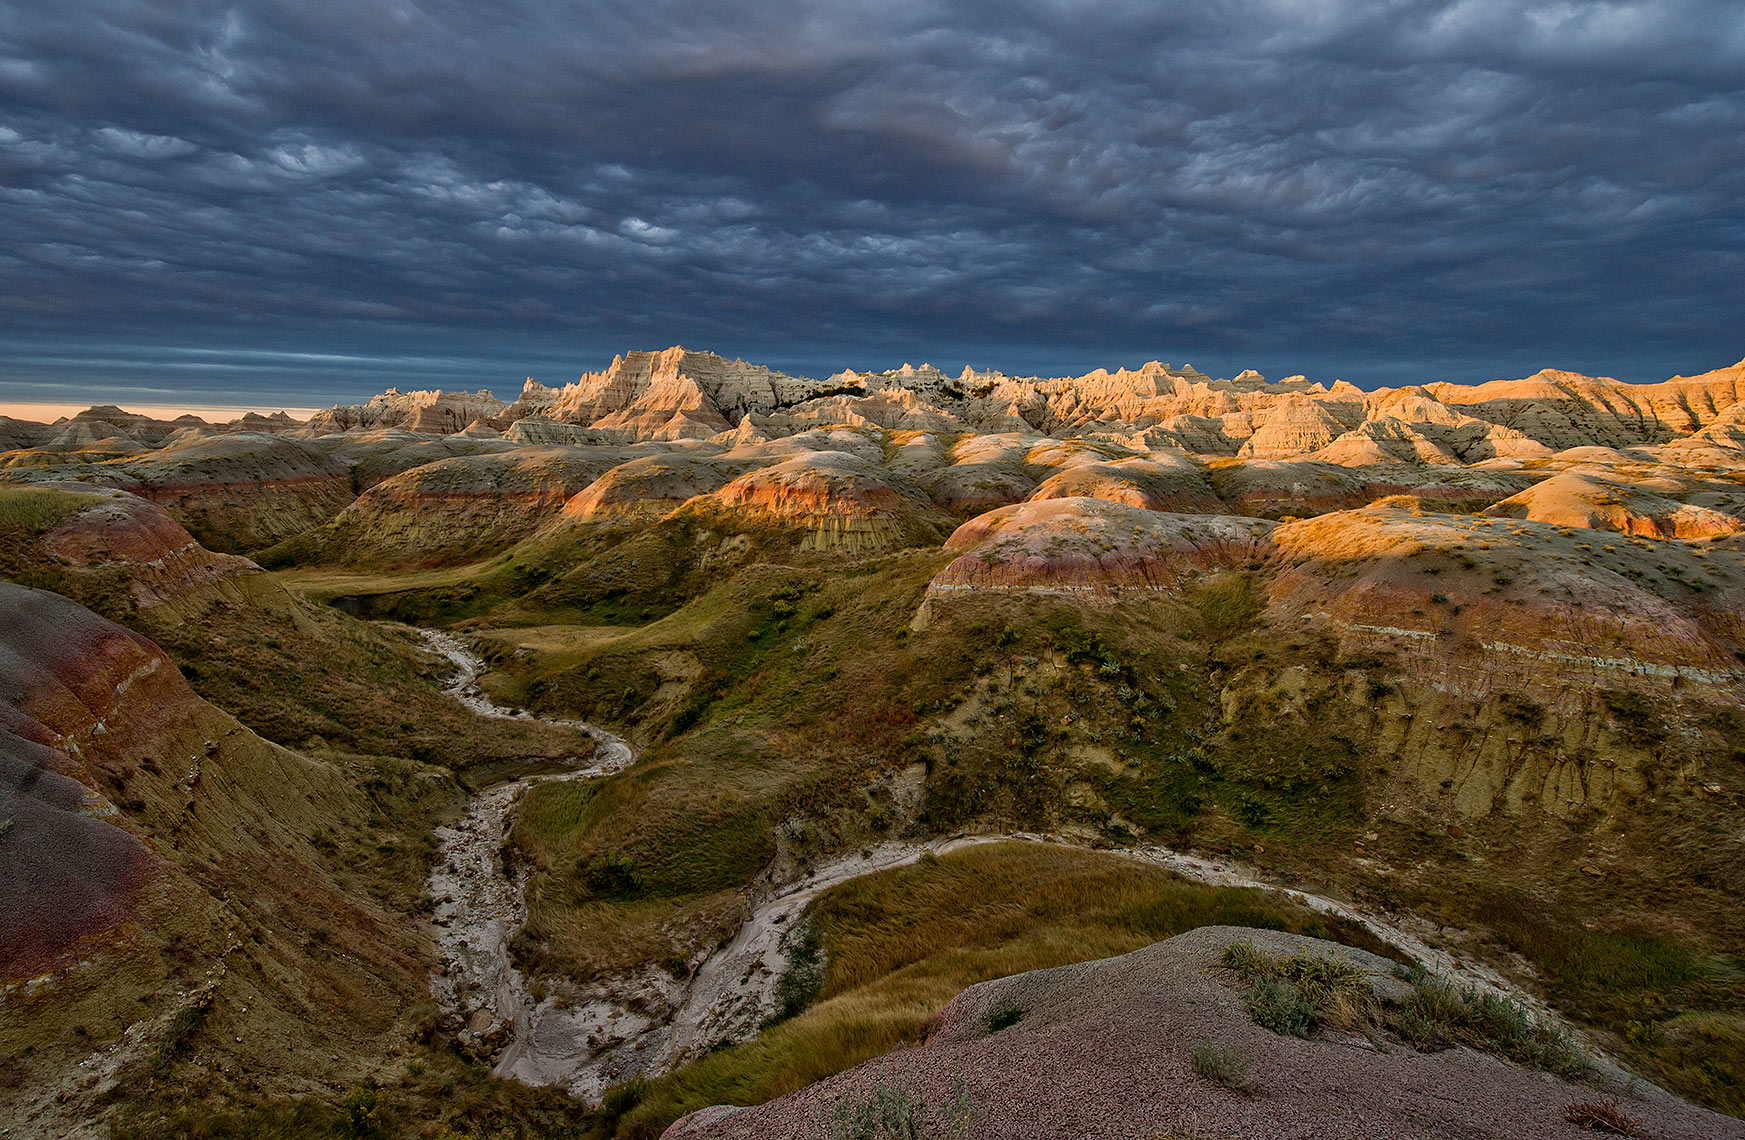 Badlands Formations Photo